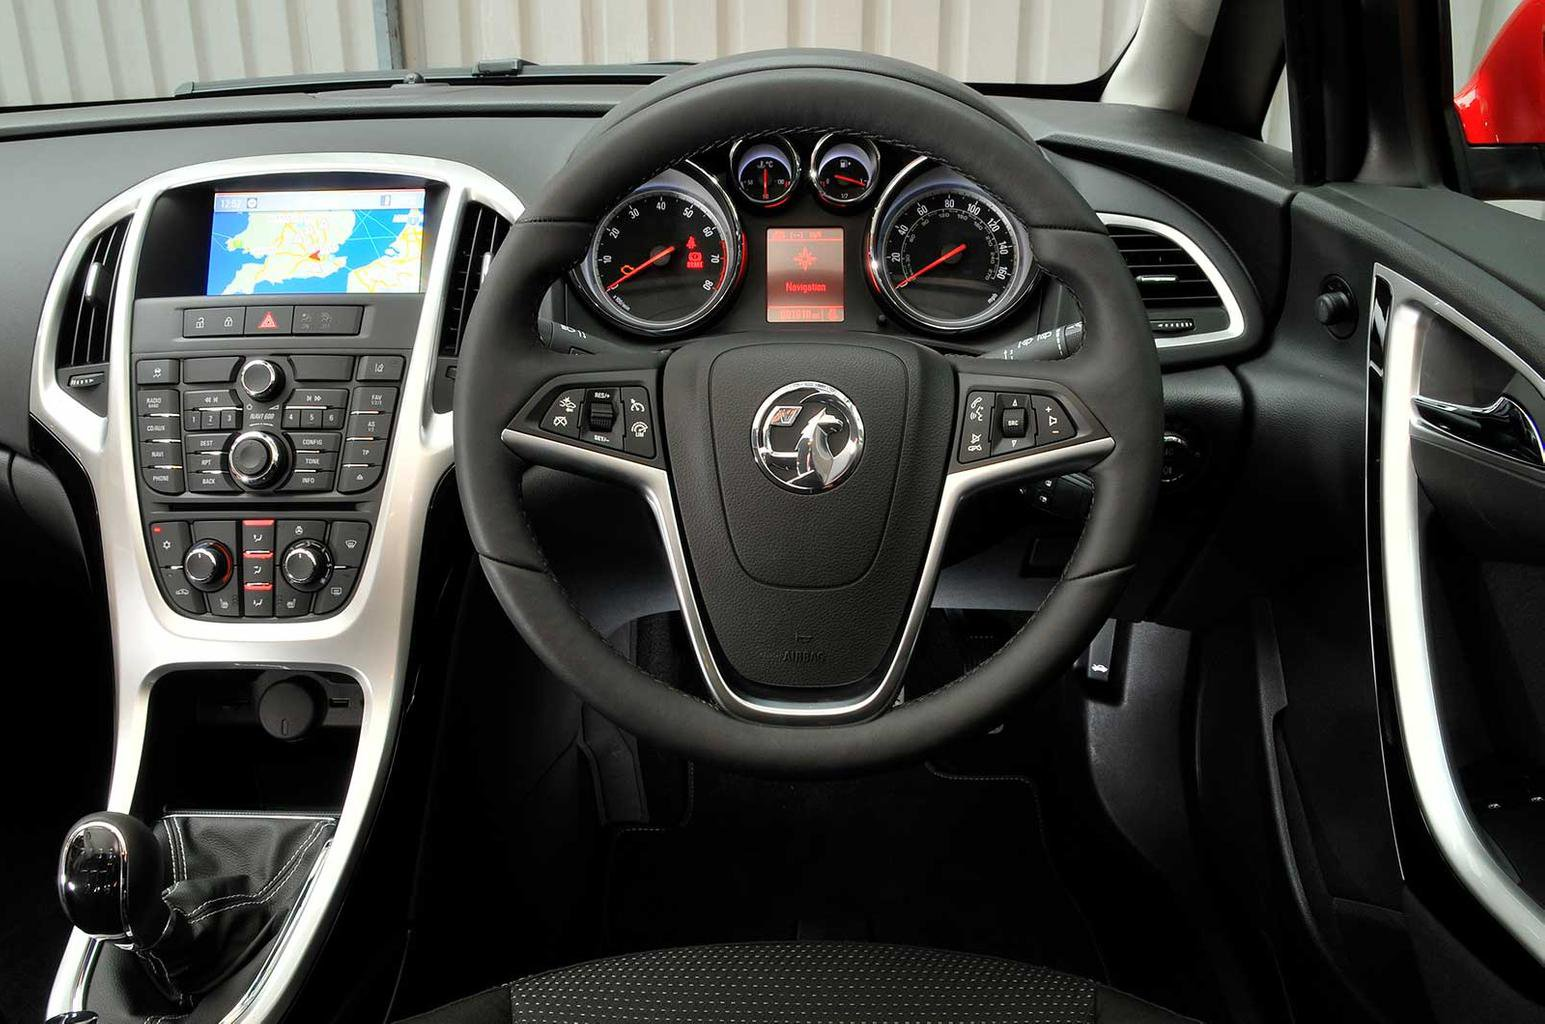 Used car of the week: Vauxhall Astra